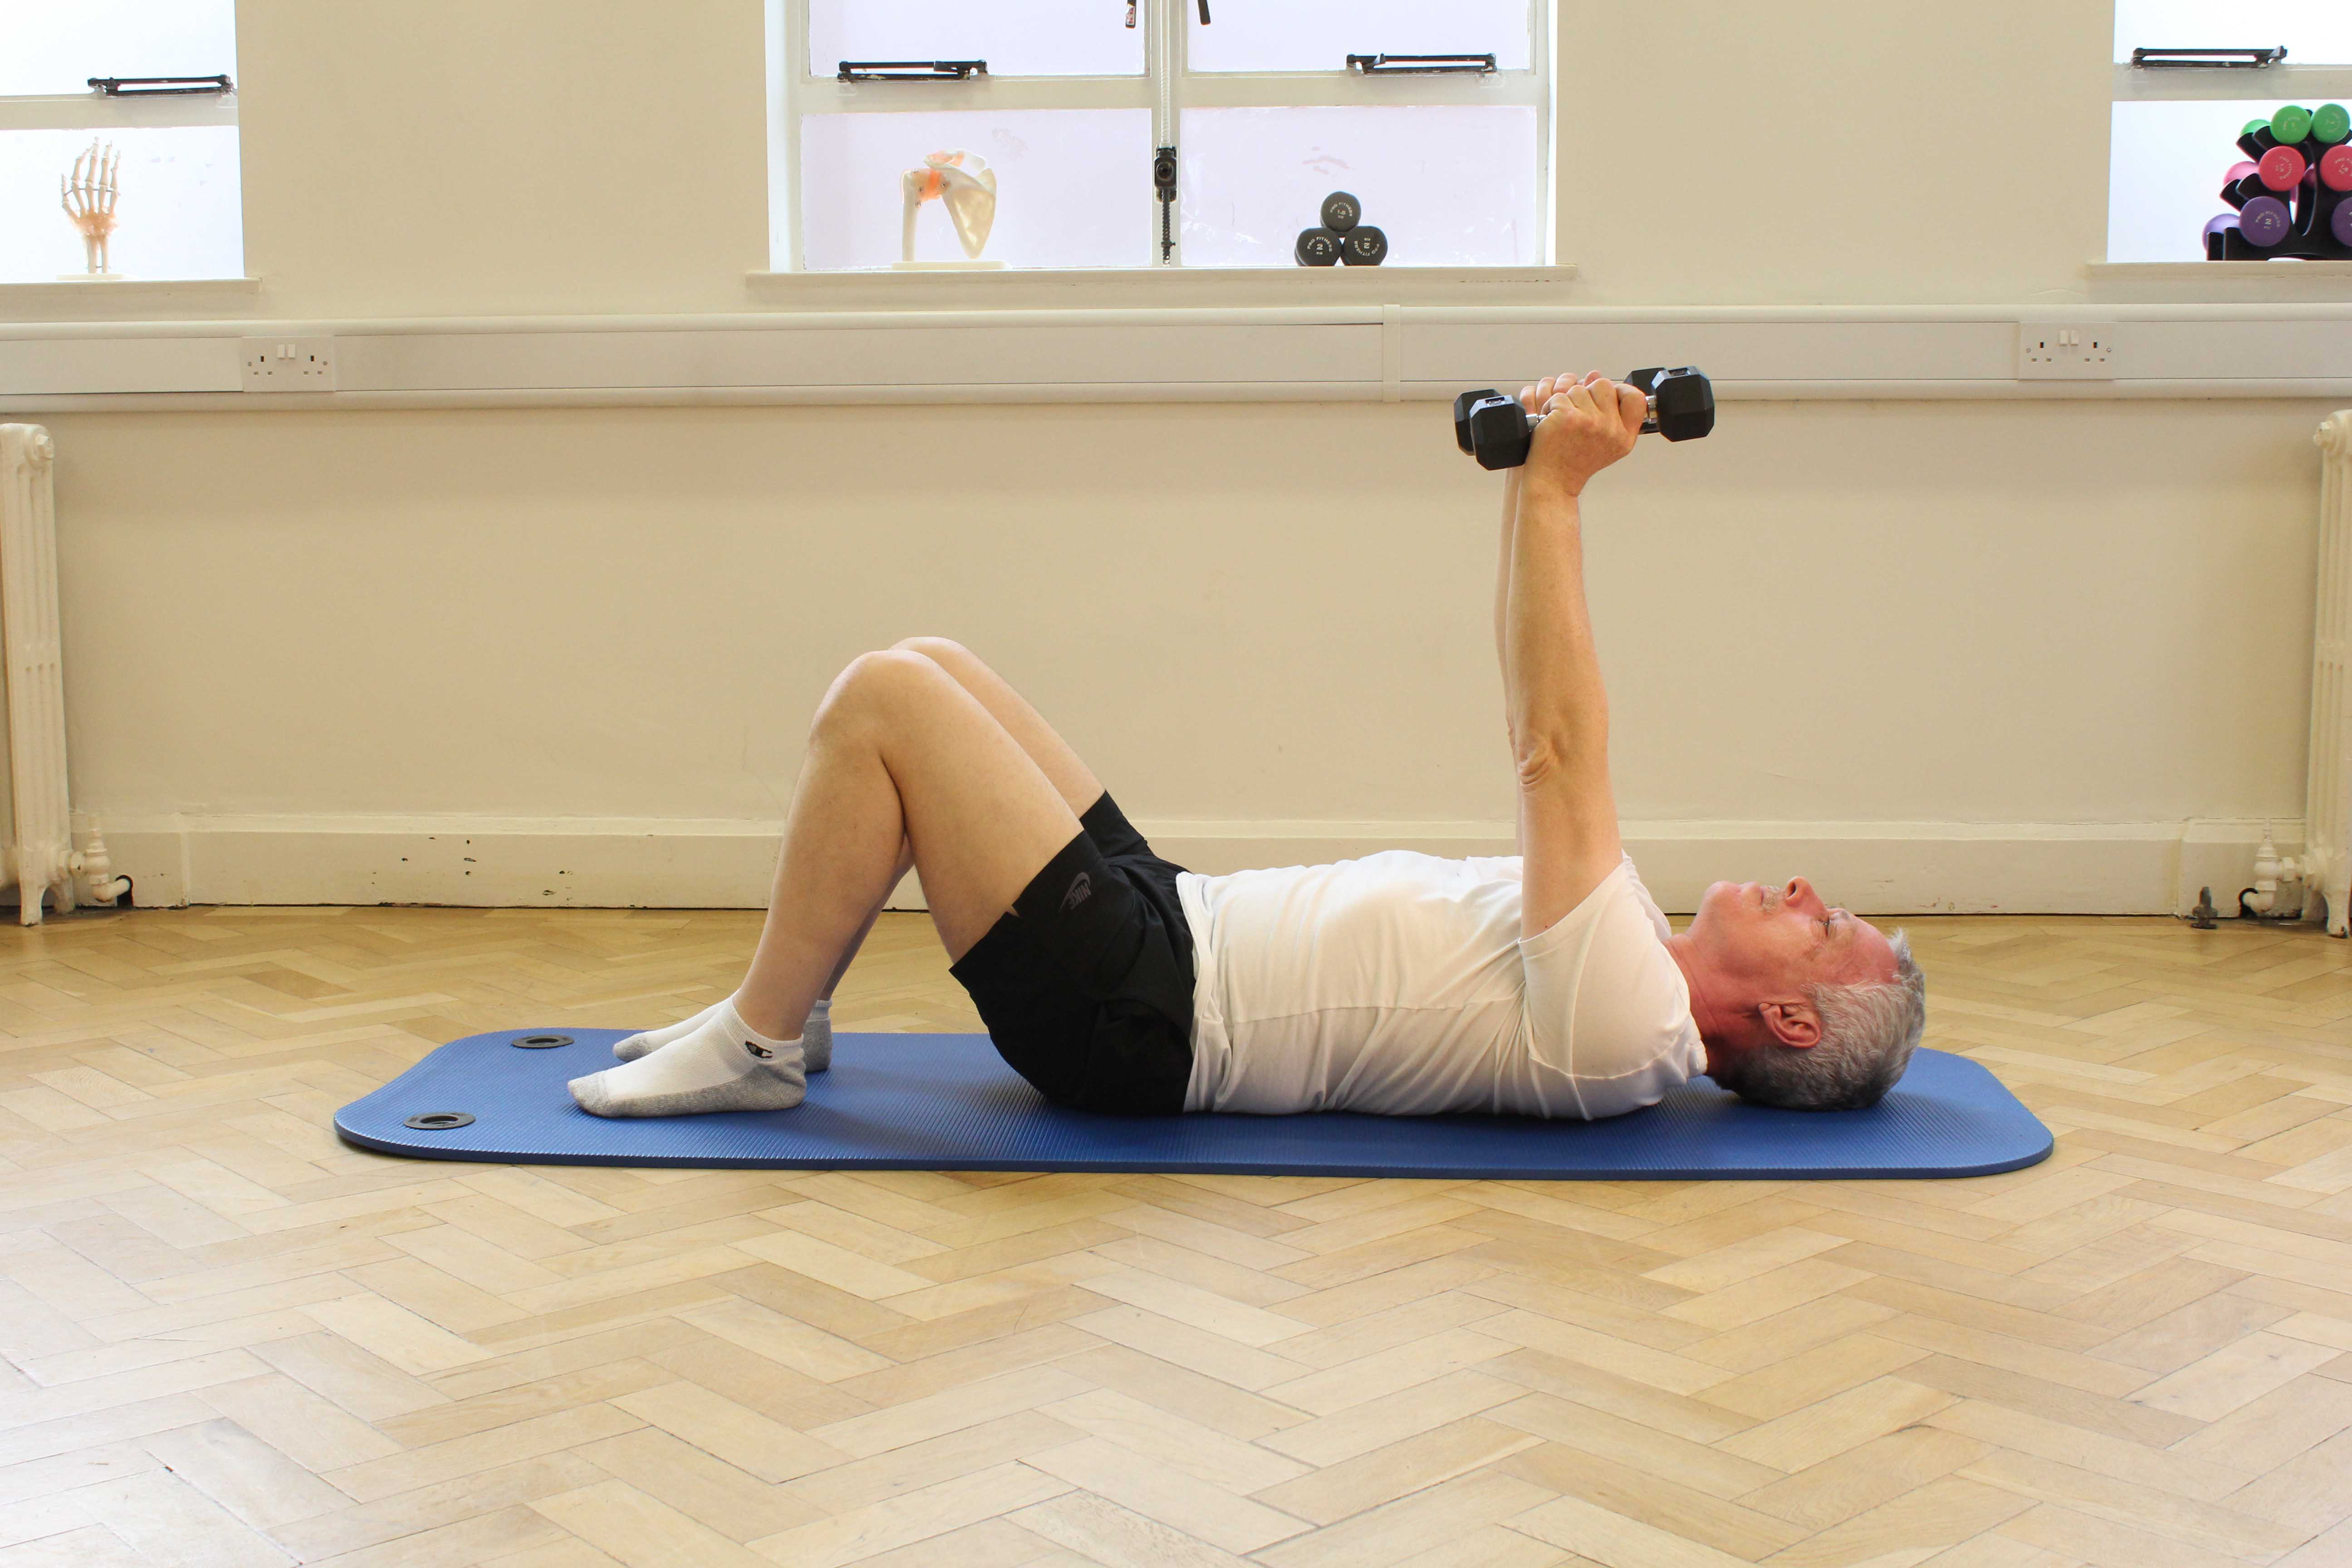 Following diagnosis of MND, patients are encouraged to maitain muscle strength through gentle exercise.